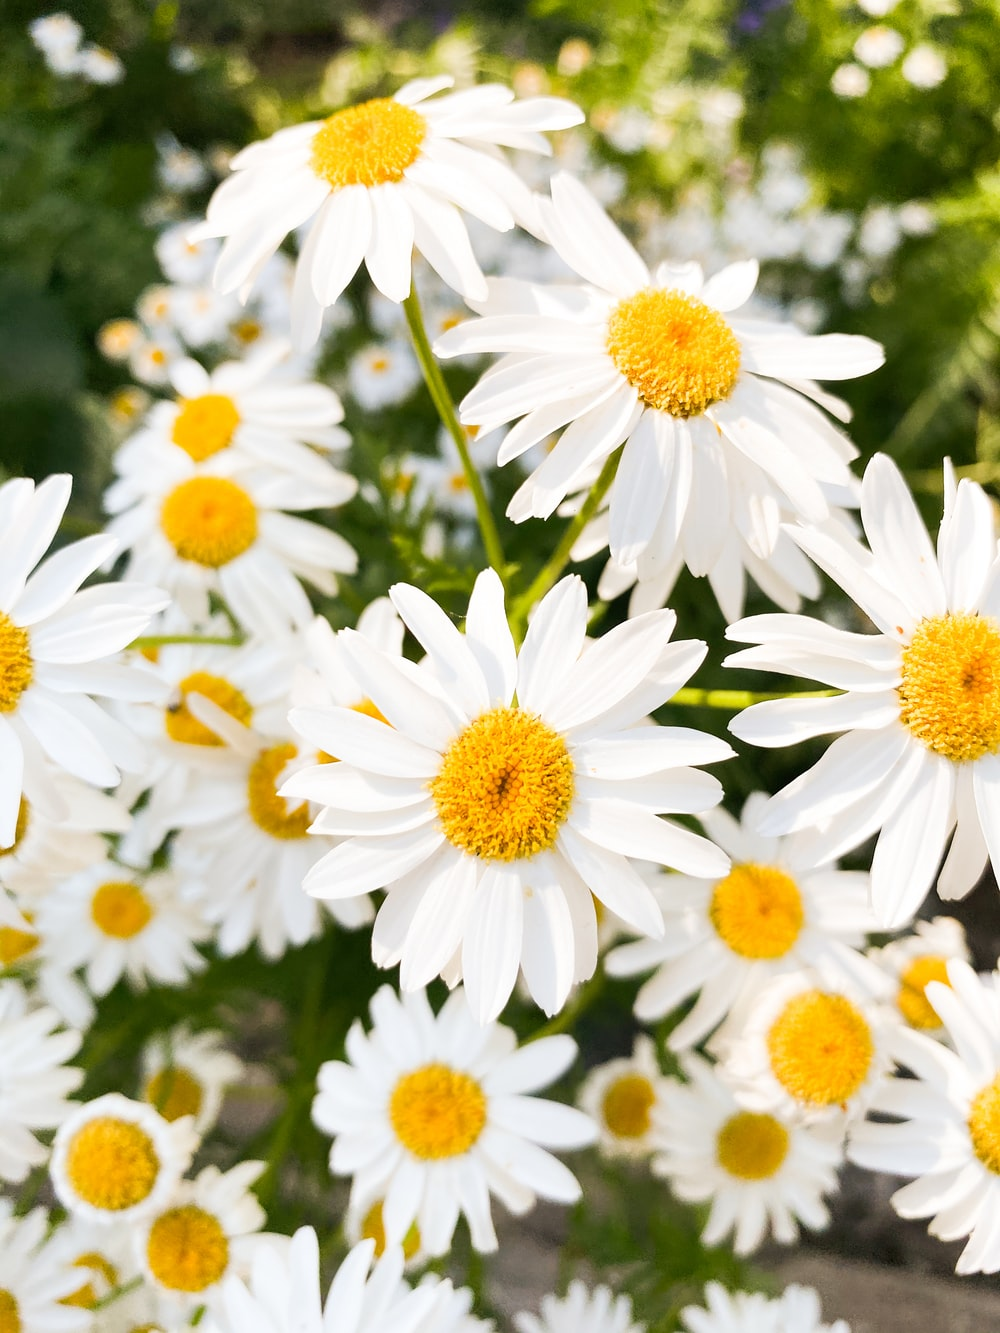 white daisies in bloom during daytime